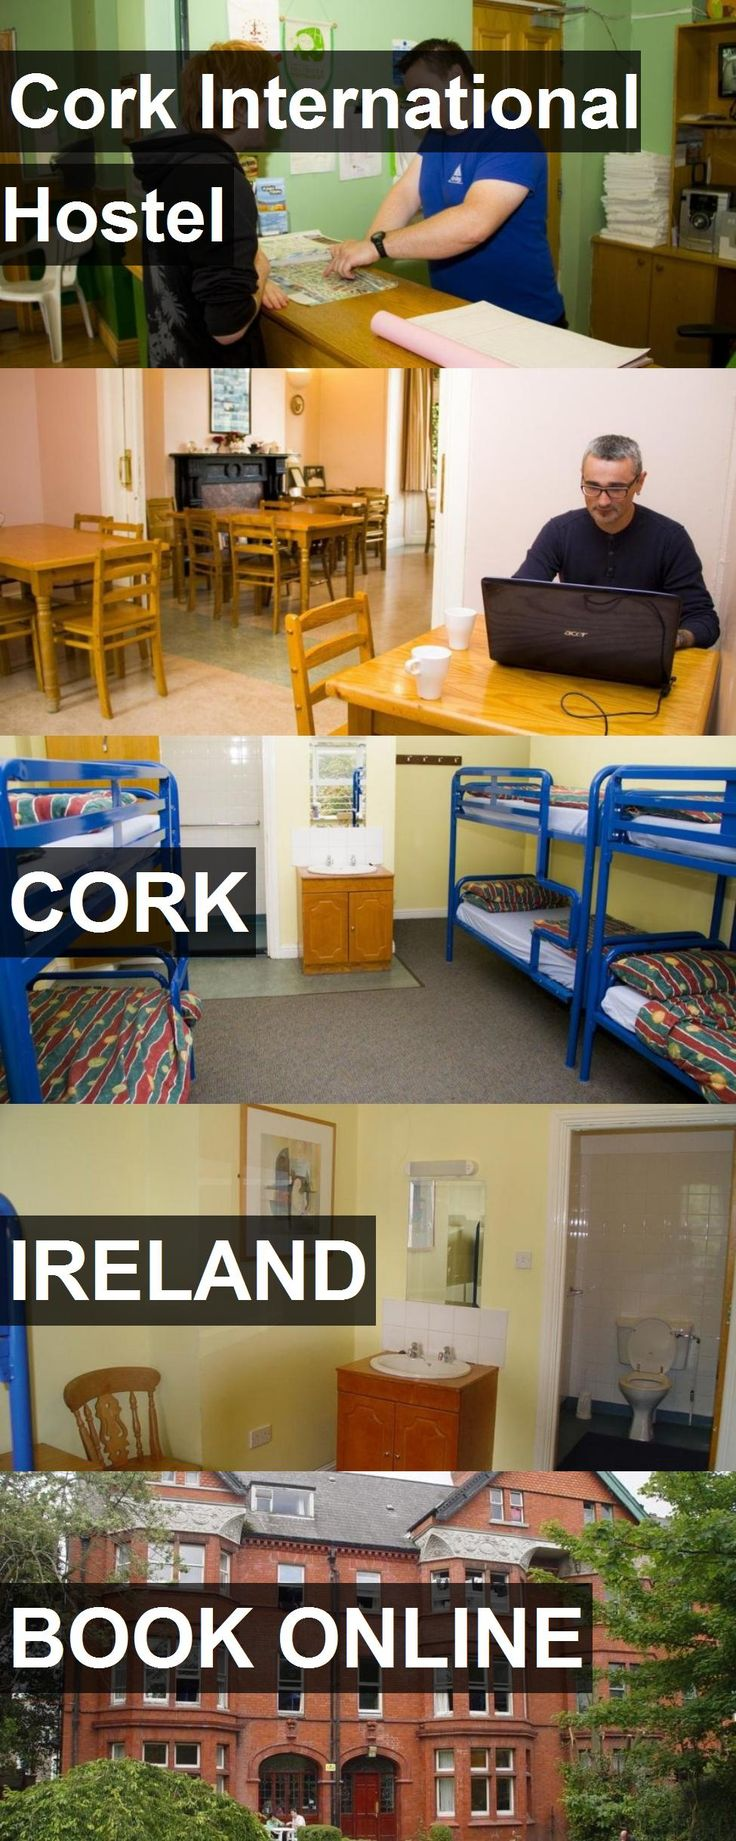 Hotel Cork International Hostel in Cork, Ireland. For more information, photos, reviews and best prices please follow the link. #Ireland #Cork #CorkInternationalHostel #hotel #travel #vacation